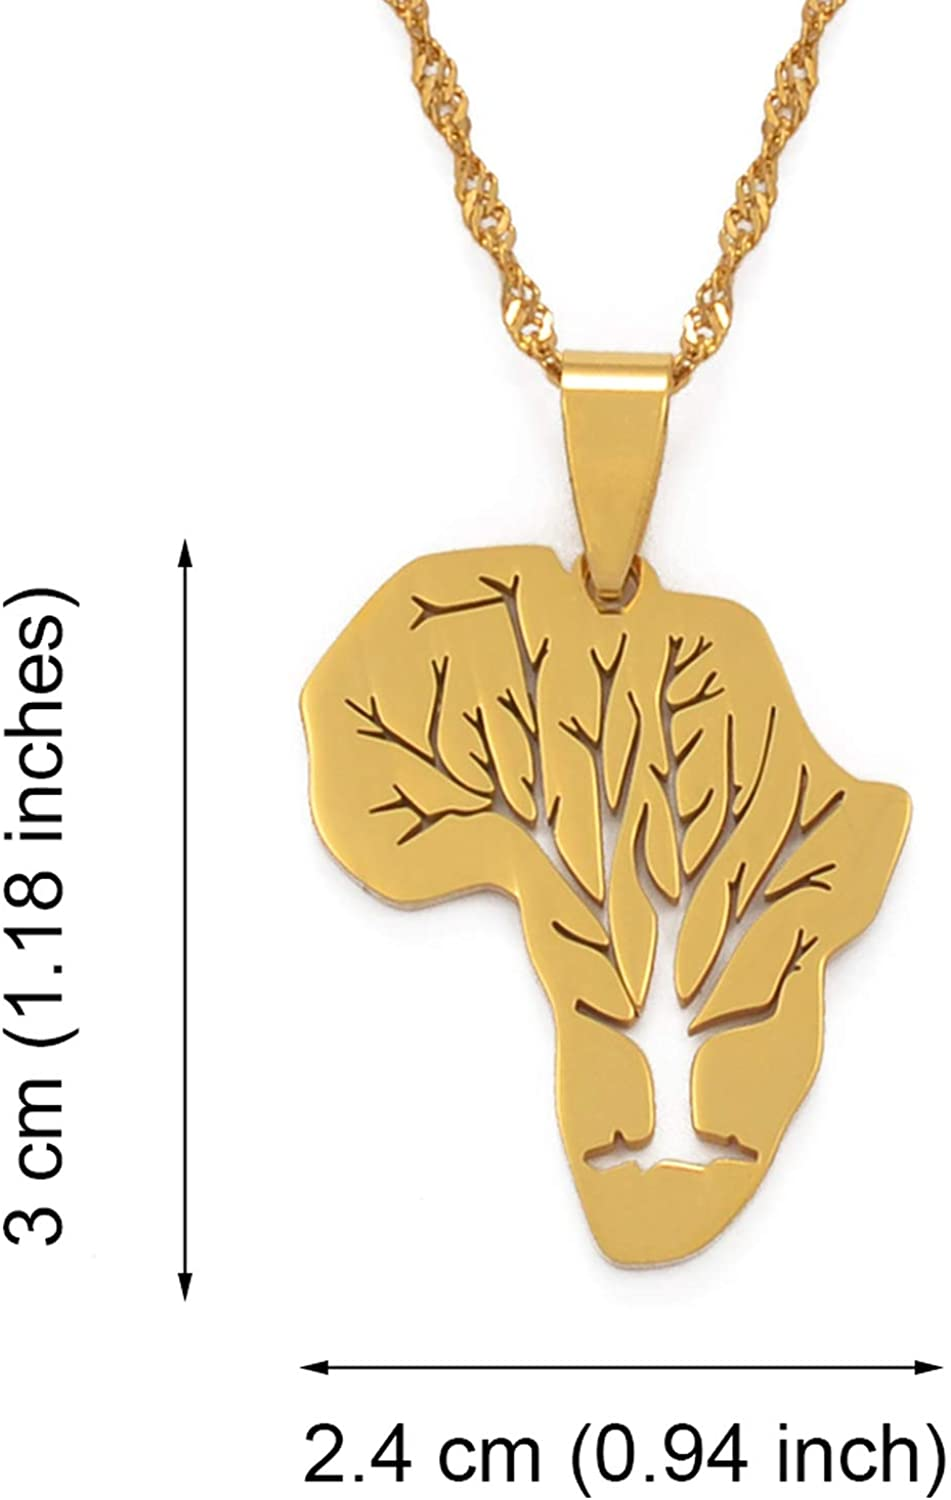 Zoe-clothes-store Map Pendant Necklaces for Women Men Africa Map Pendant Necklaces African Roots Tree Neckalces Jewelry Gold Color Stainless Steel